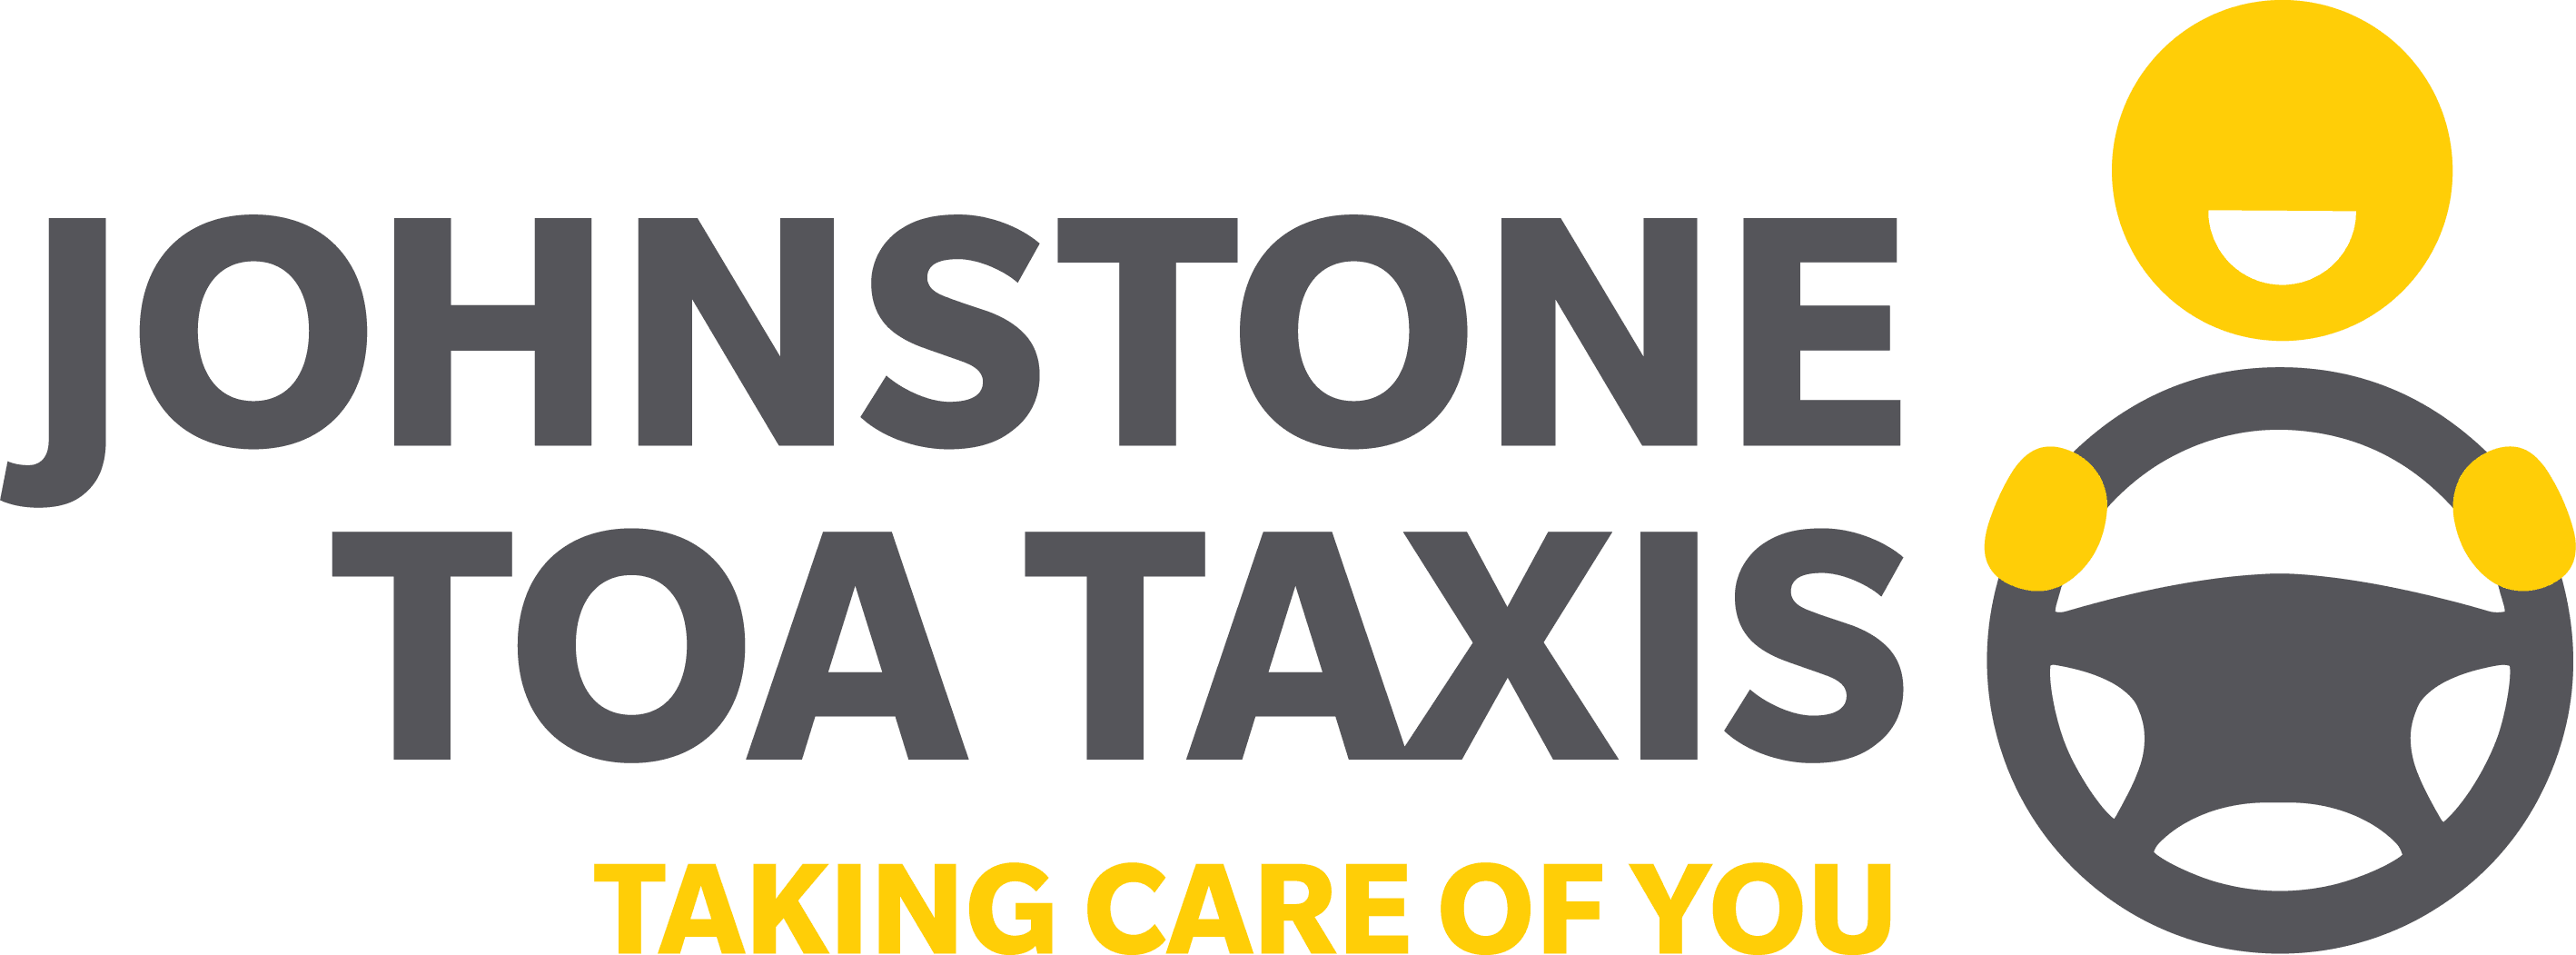 Johnstone TOA Taxis